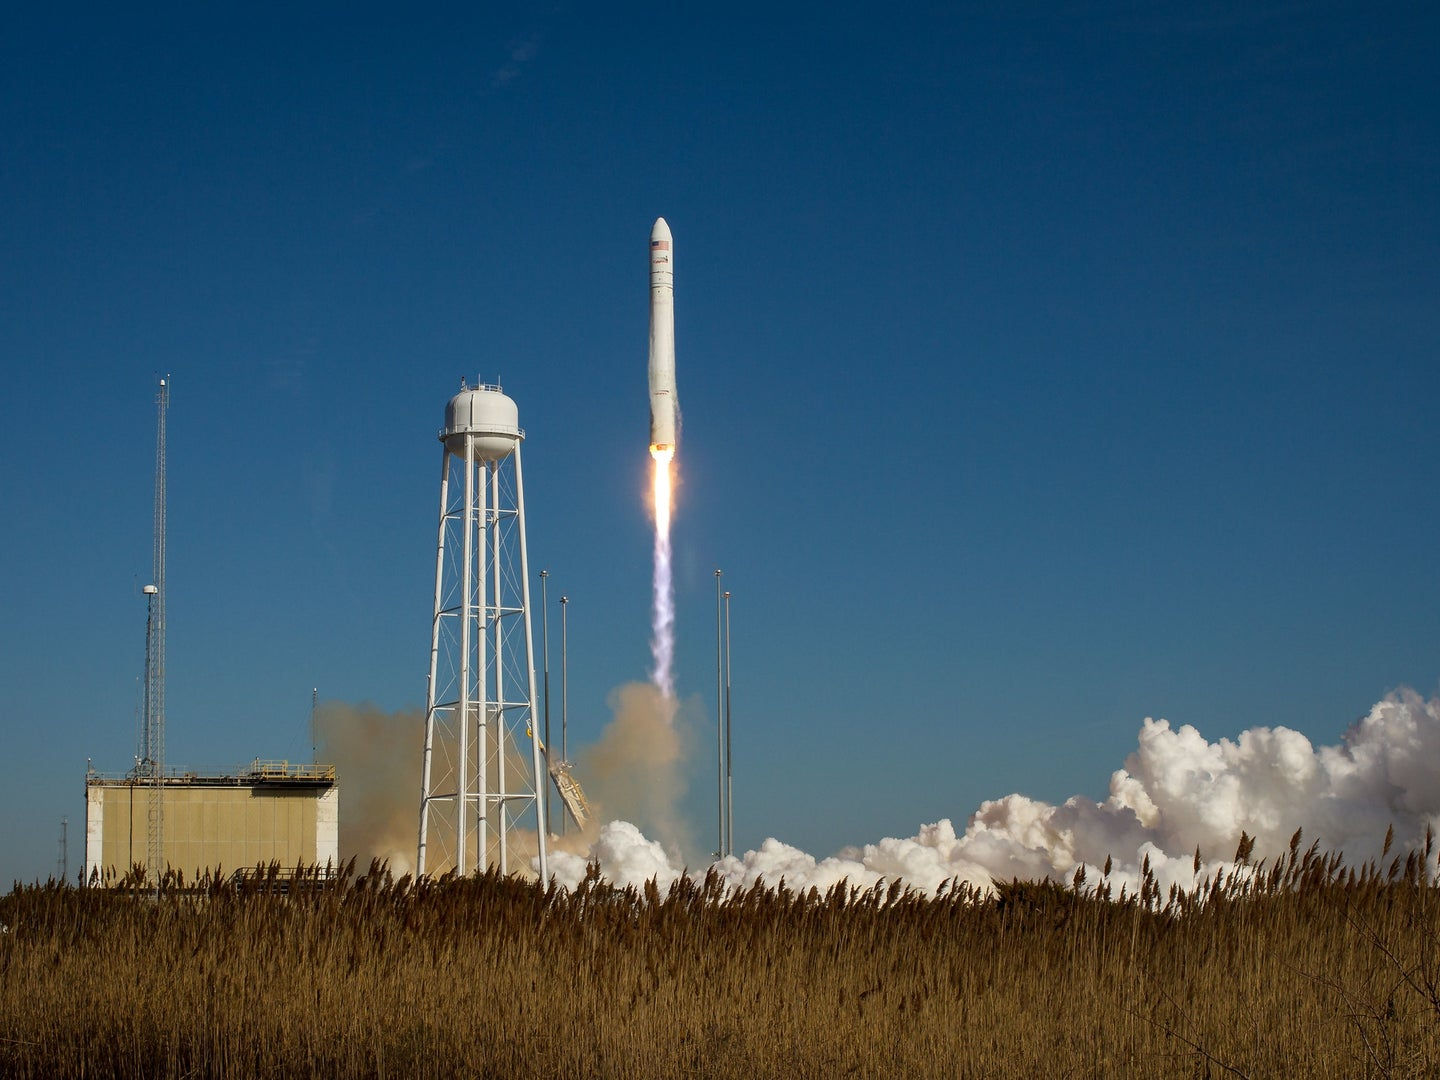 This rocket launched from Pad-0A at NASA's Wallops Flight Facility (Virginia) on Jan. 9, 2014, and also performed a resupply to the ISS—though it did not carry new toilet hardware.